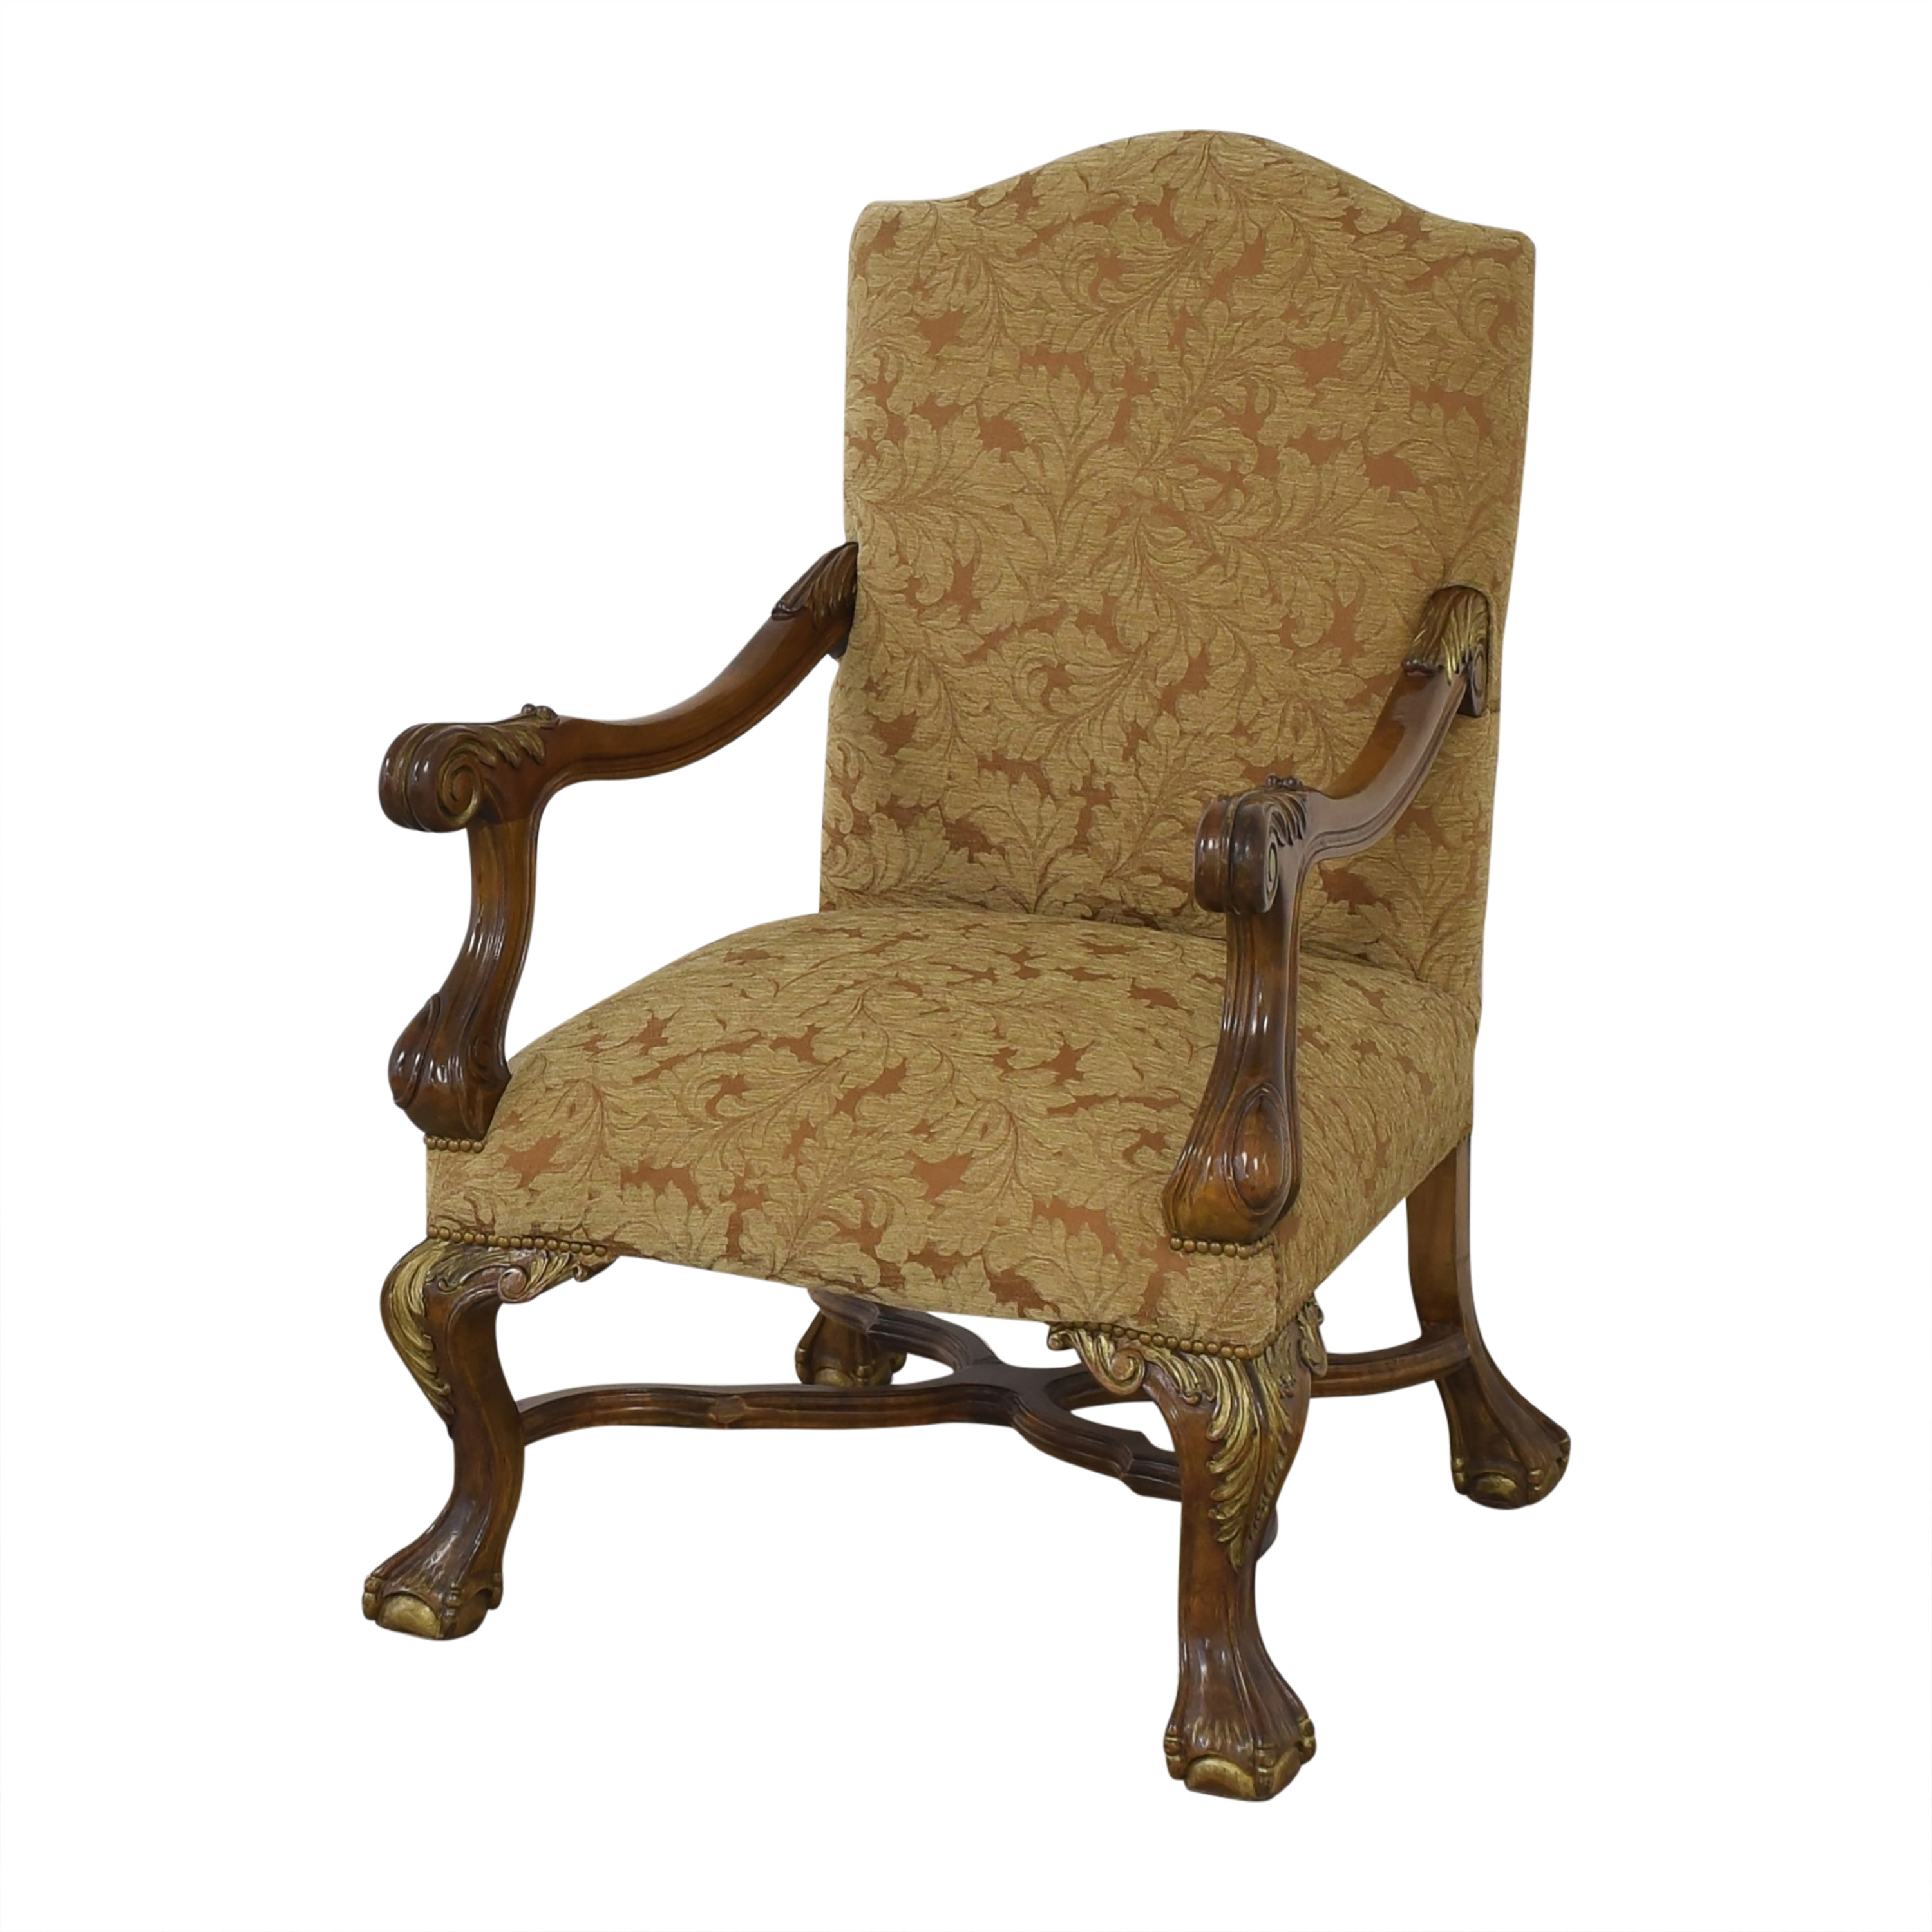 Vintage Upholsted Armchair / Chairs